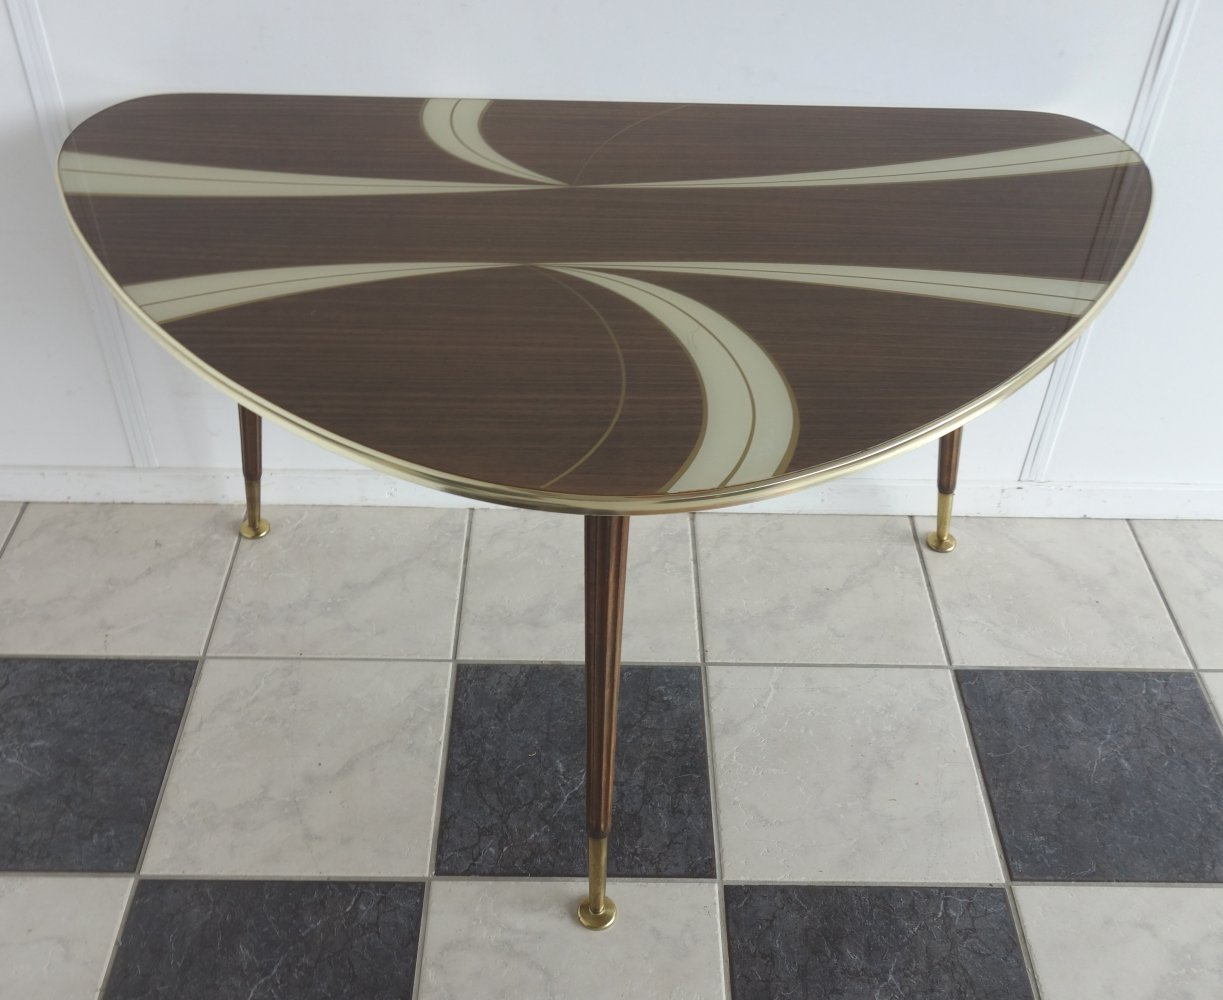 Glass top kidney shaped table by Ilse Möbel, 1950s